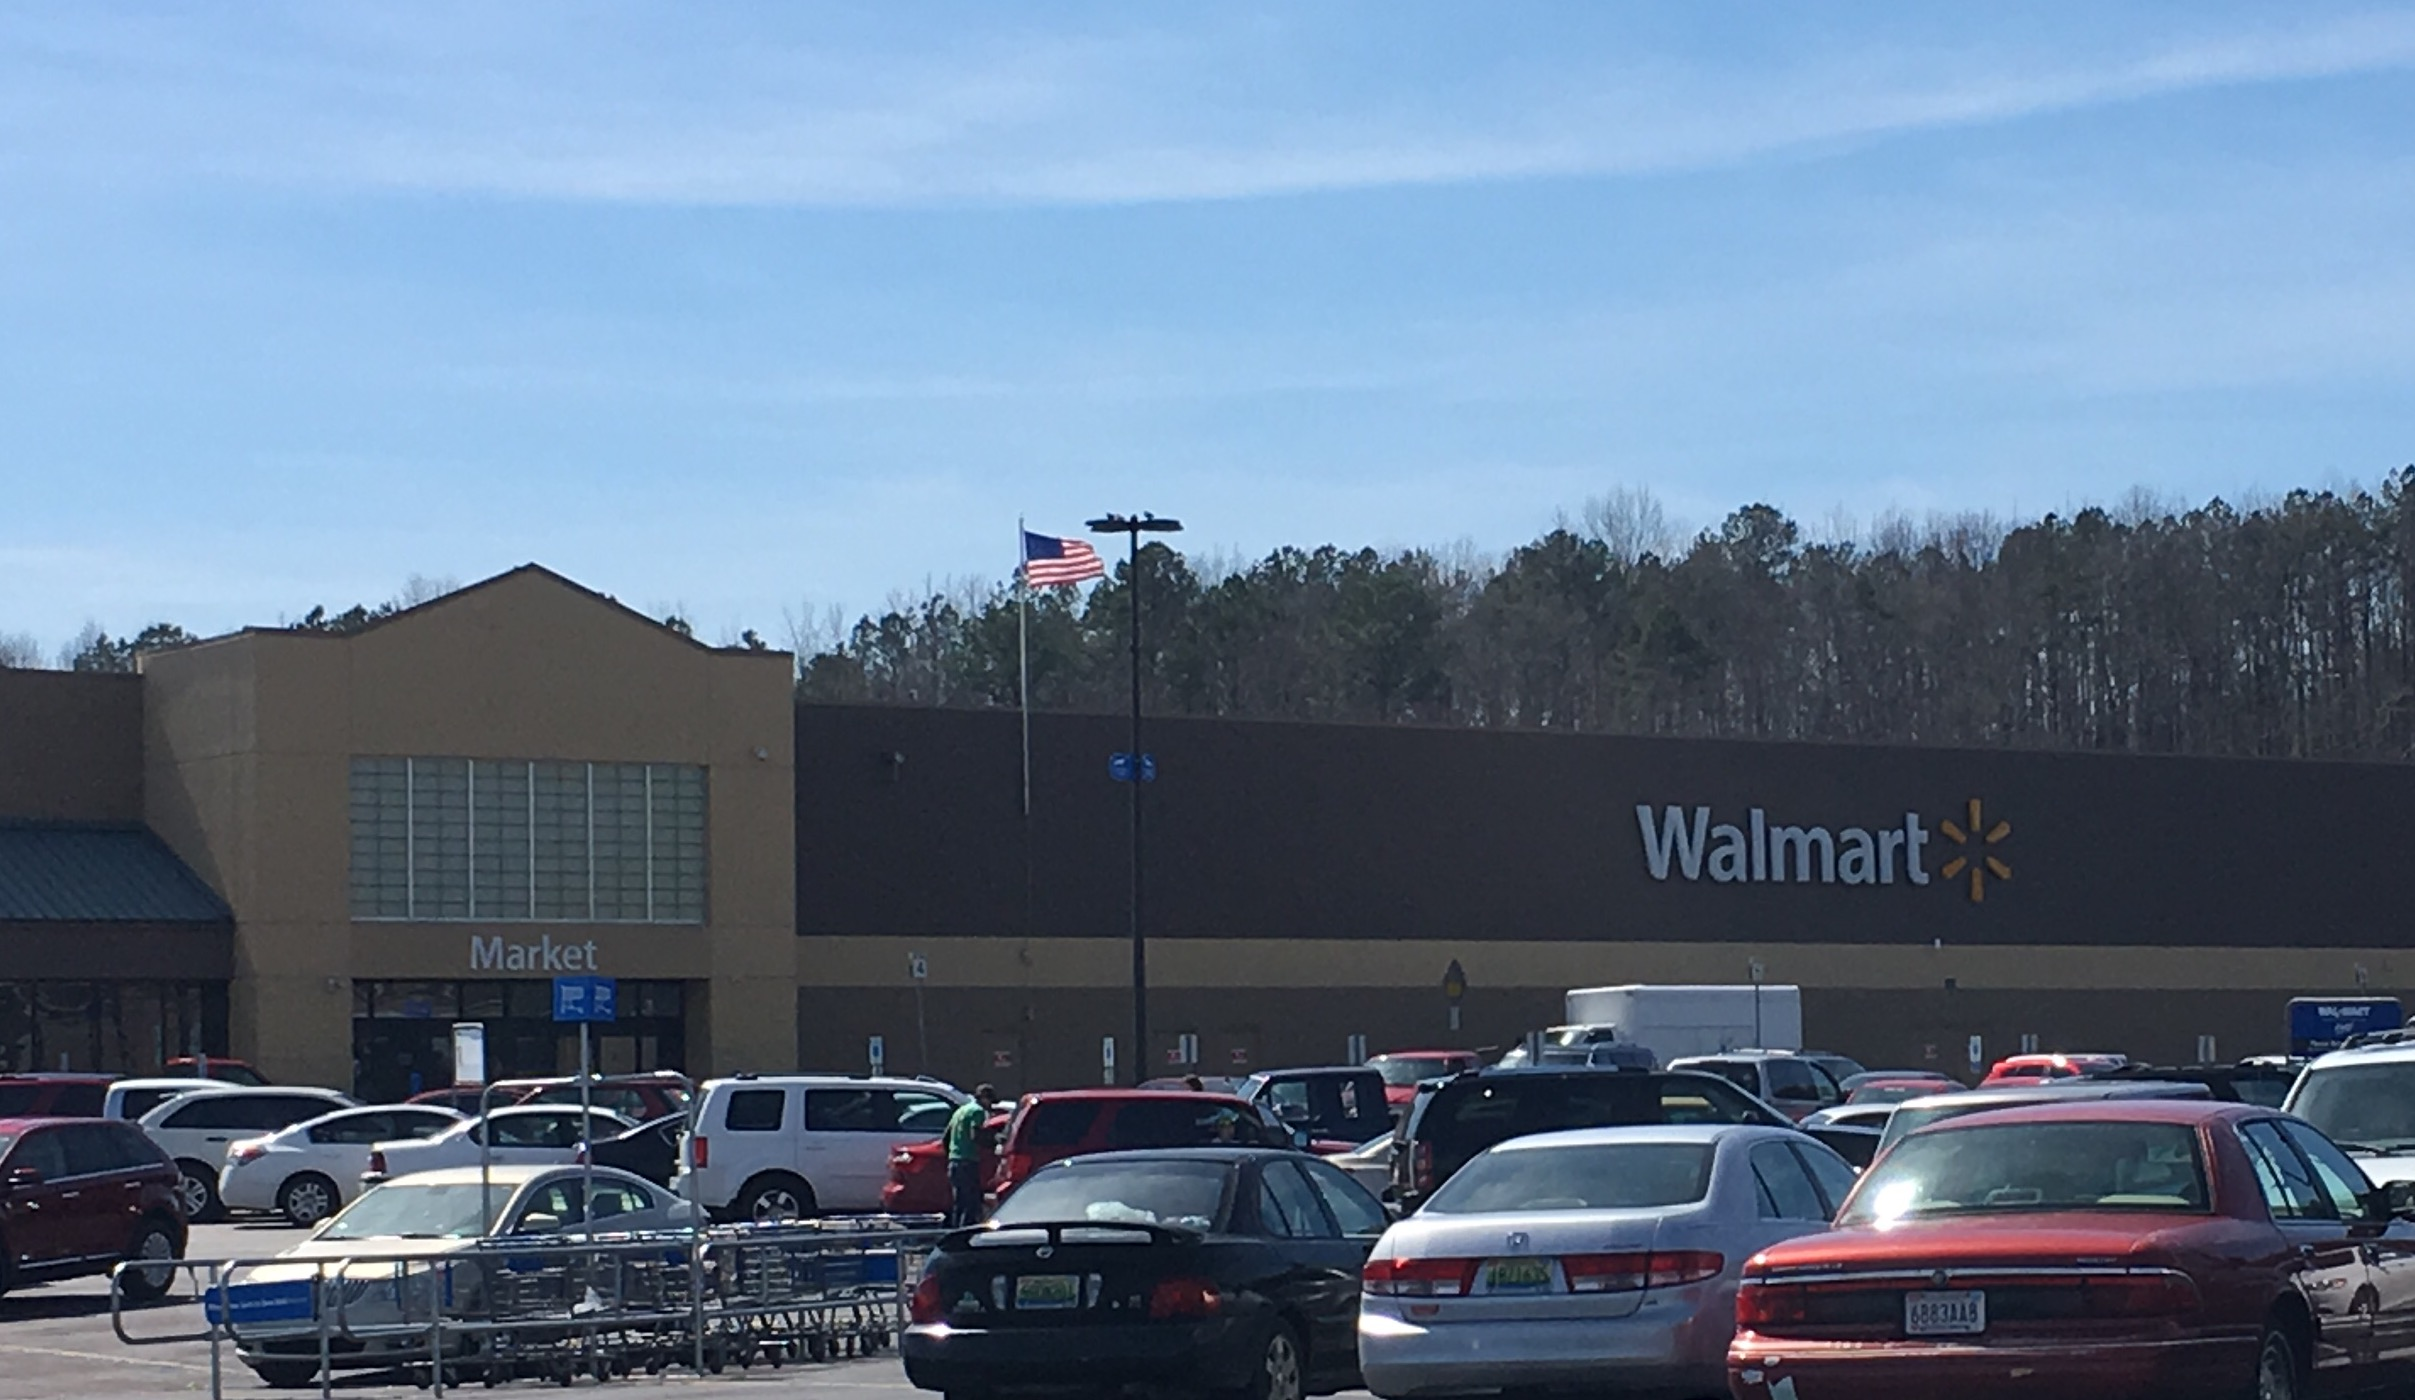 Wal-Mart announces employee pay raise on March 10 paycheck